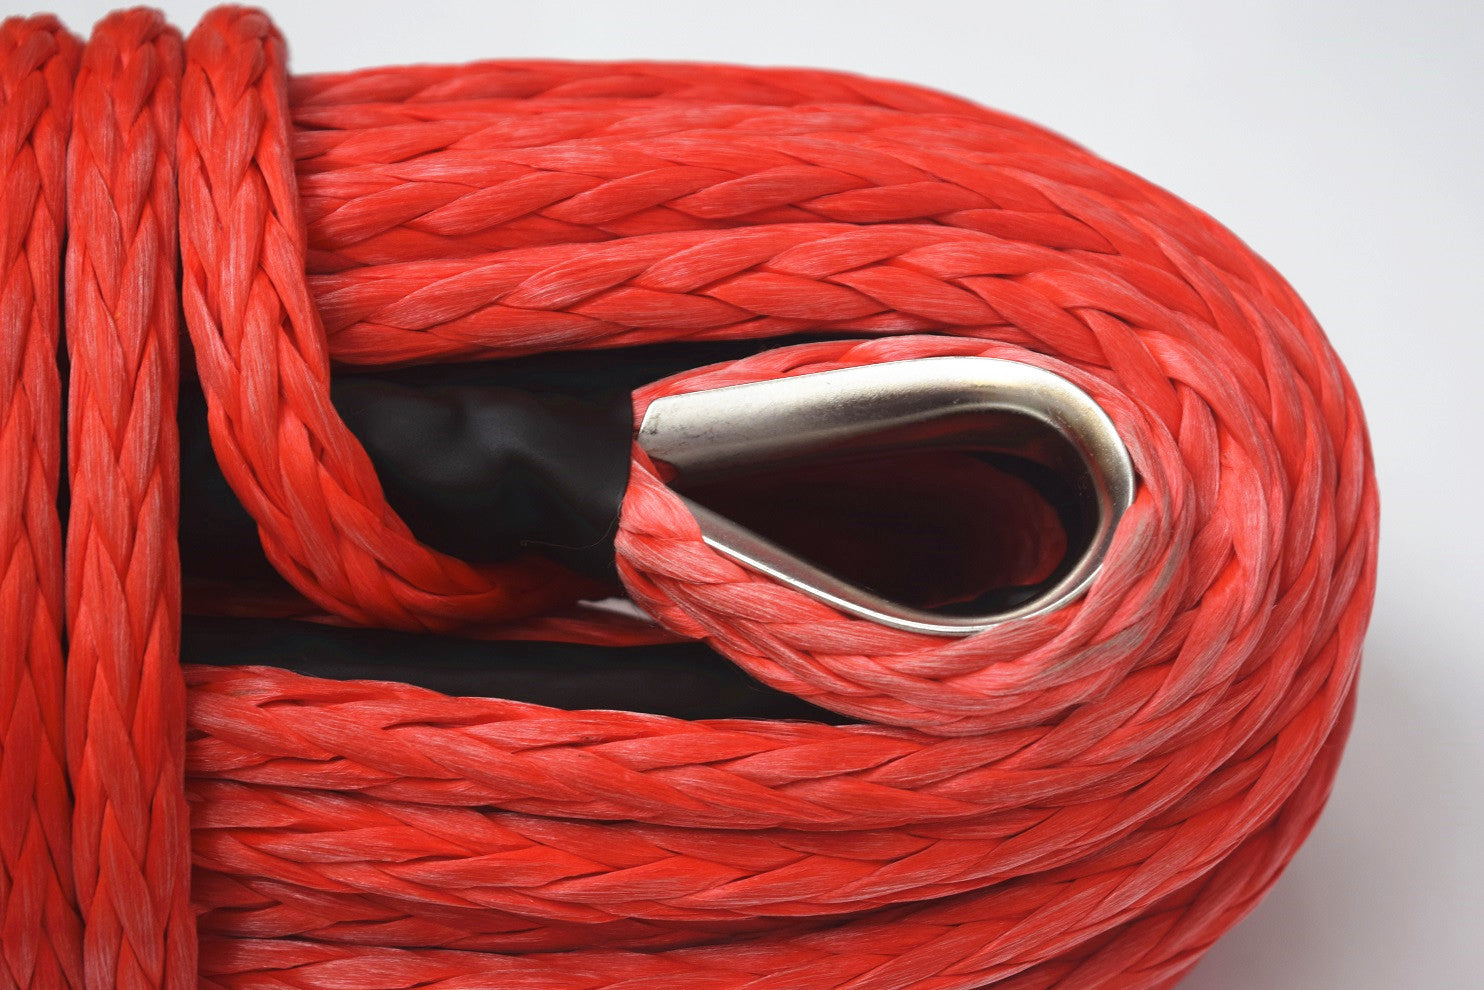 14mm*30m Red Synthetic Rope,Boat Winch Cable for Electric Winches